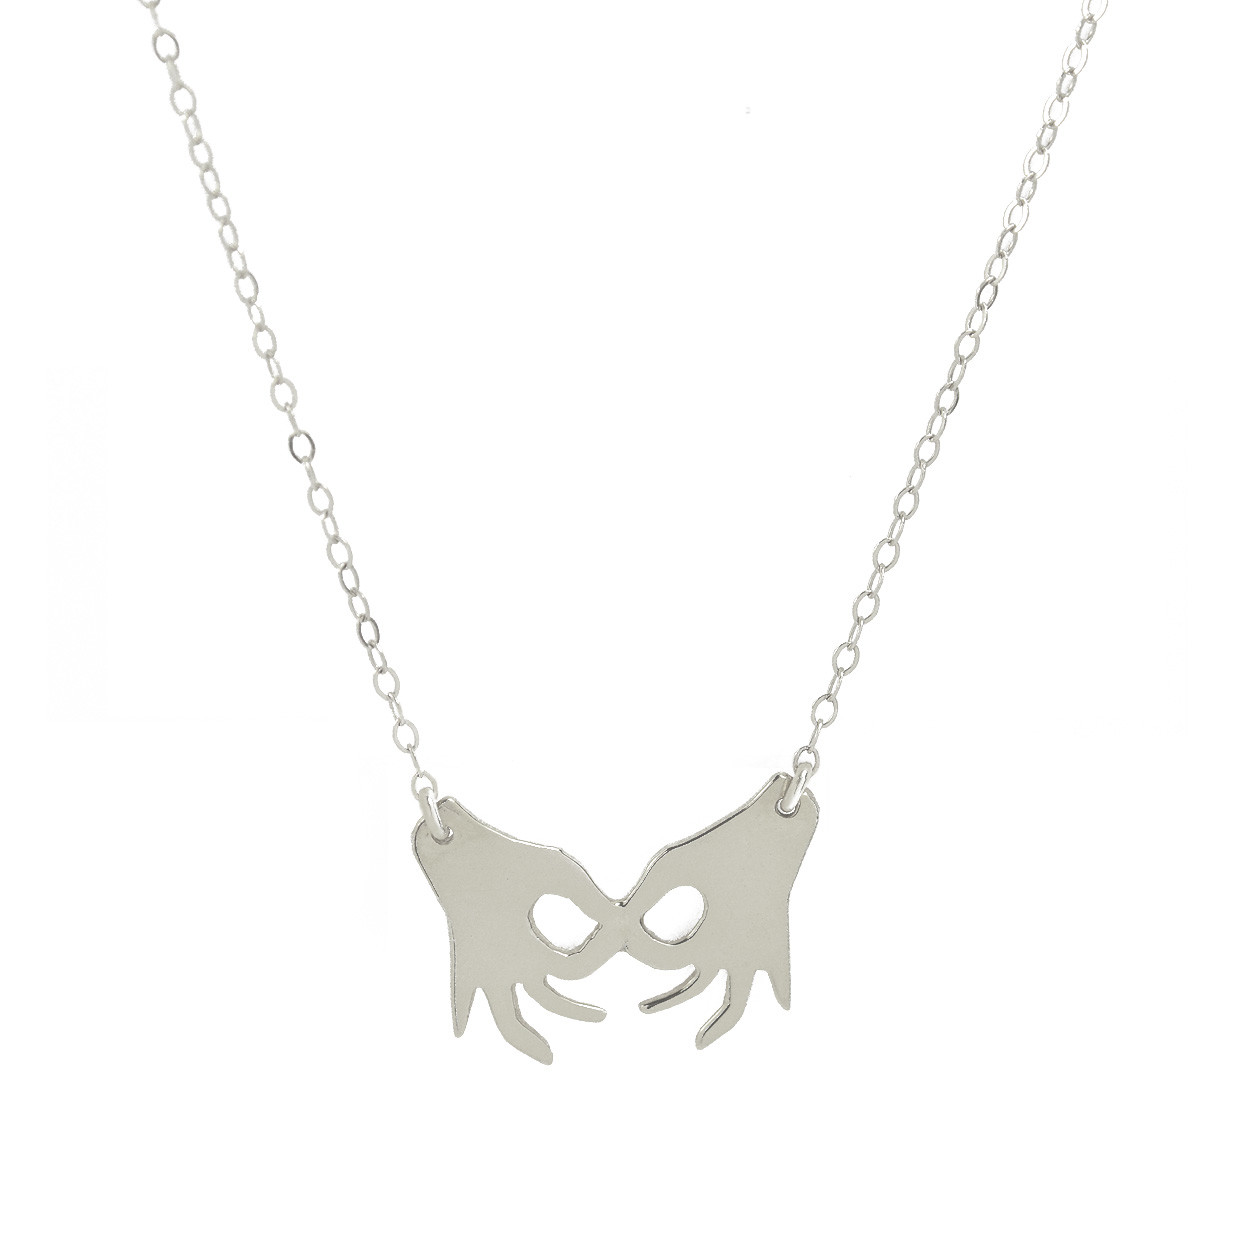 united hands necklace silver